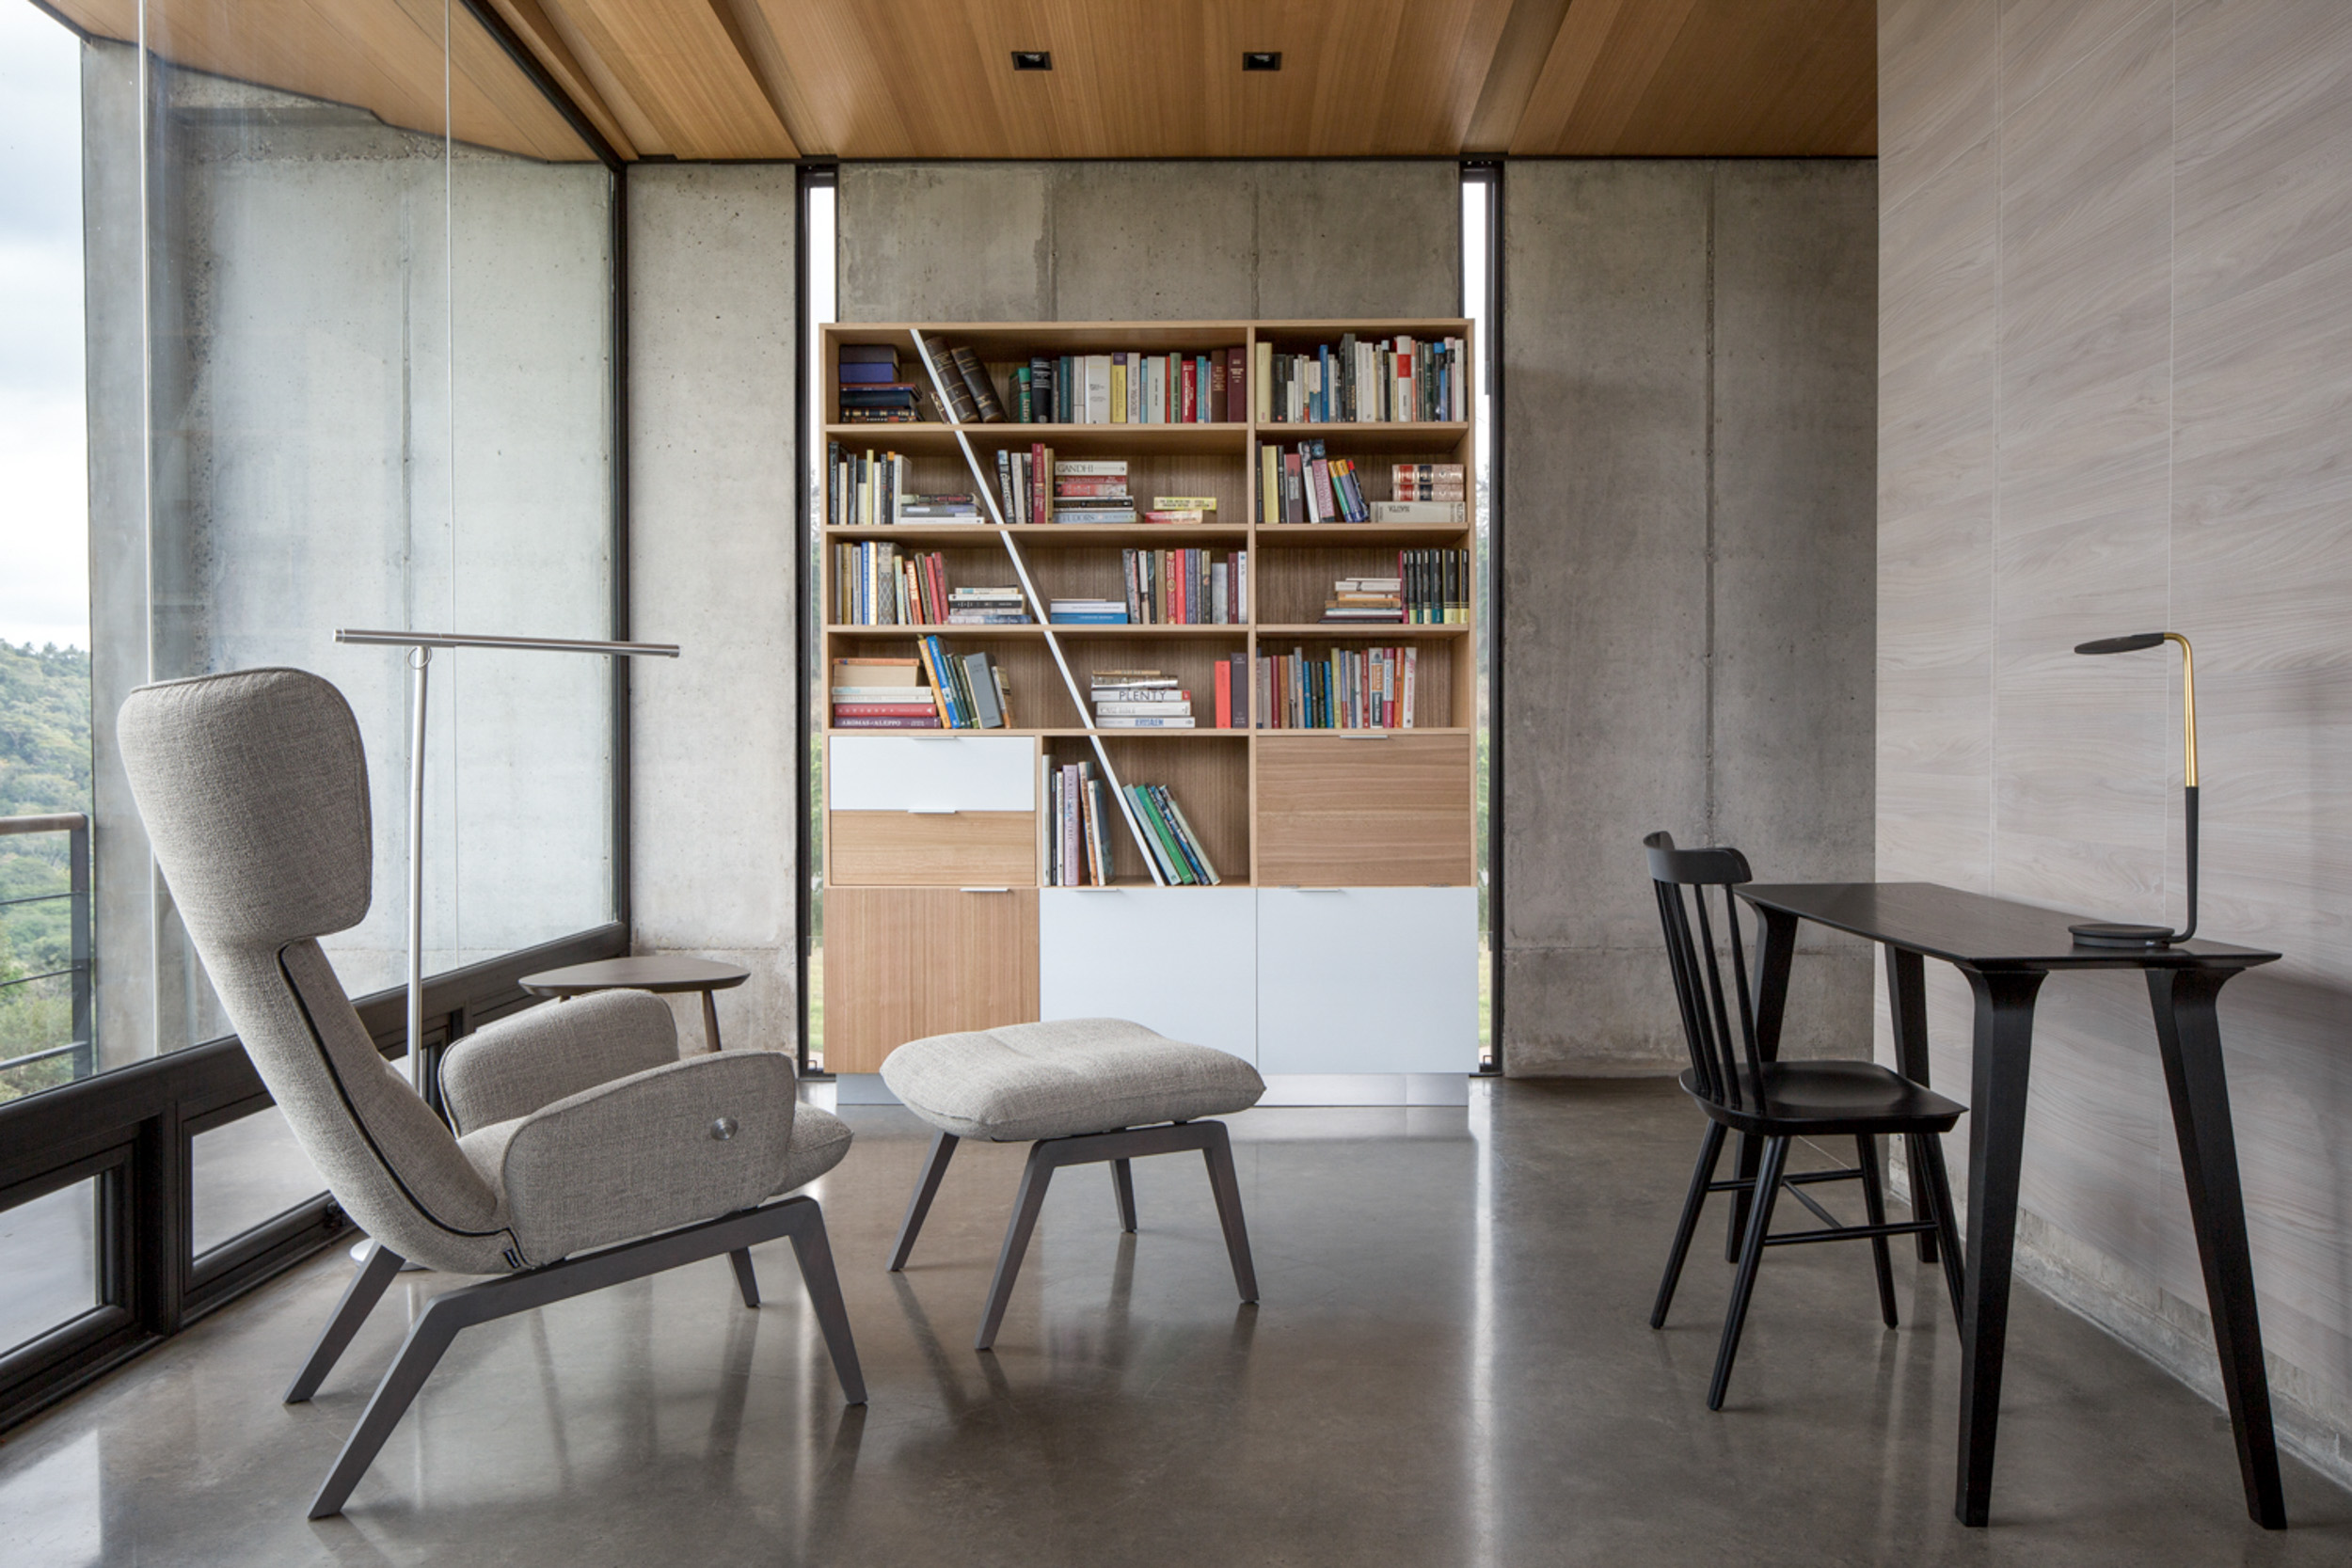 Jason_Bax_SQ_Architecture_El_Salvador_BAX1683_BOOKCASE.jpg